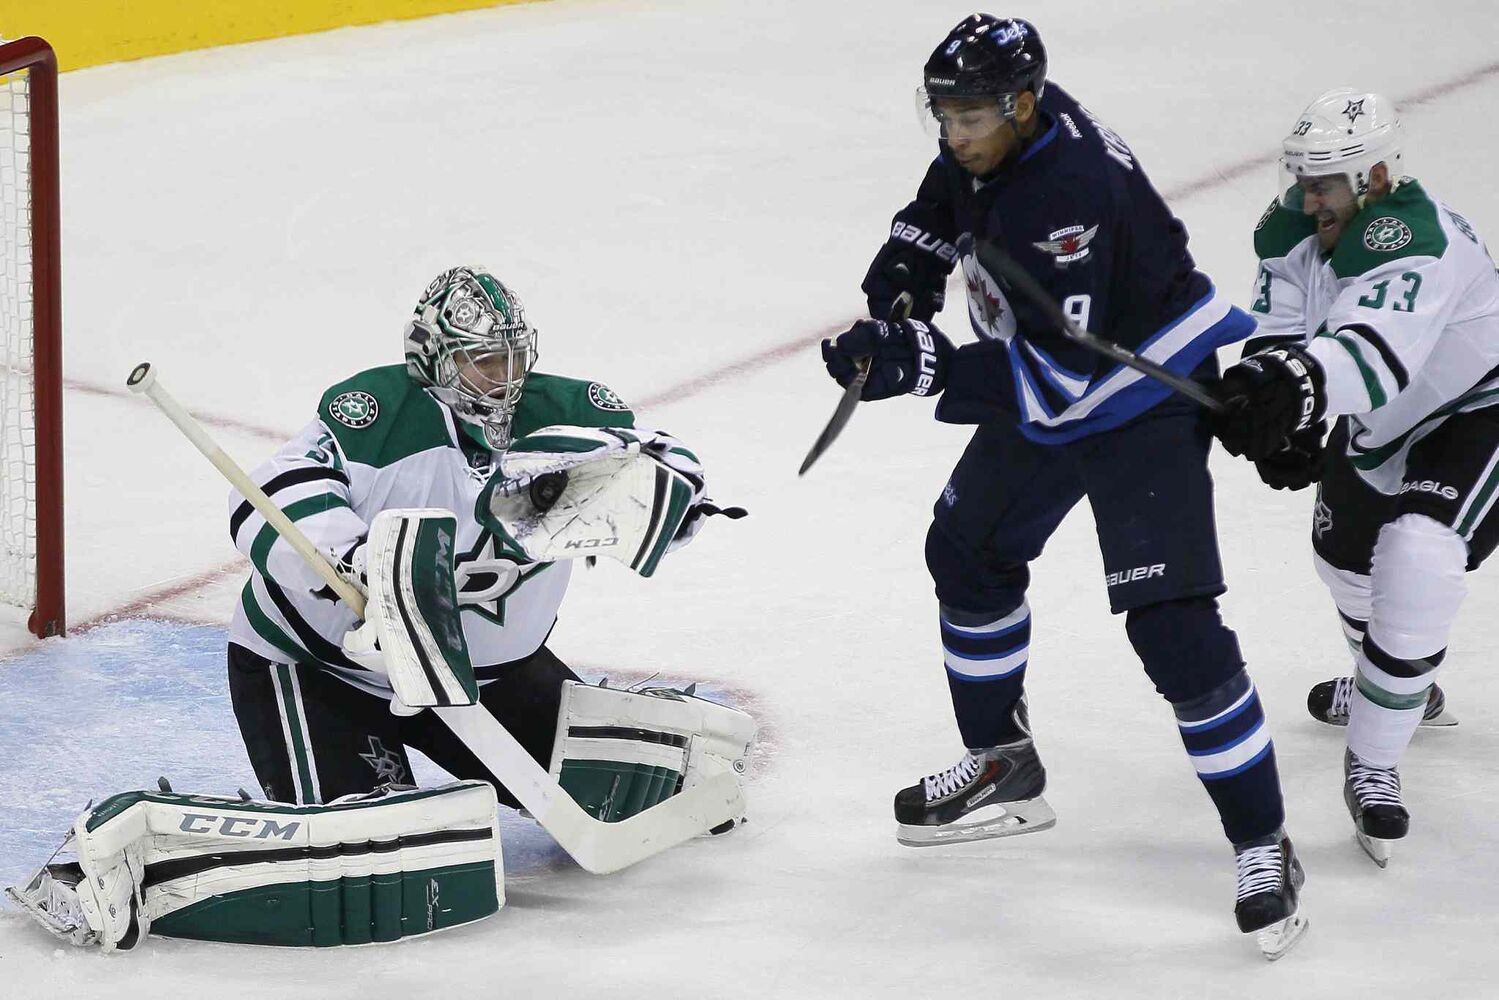 Dallas Stars goaltender Kari Lehtonen (32) grabs the puck as Evander Kane (9) tries to deflect it past him during the first period. (JOHN WOODS / THE CANADIAN PRESS)